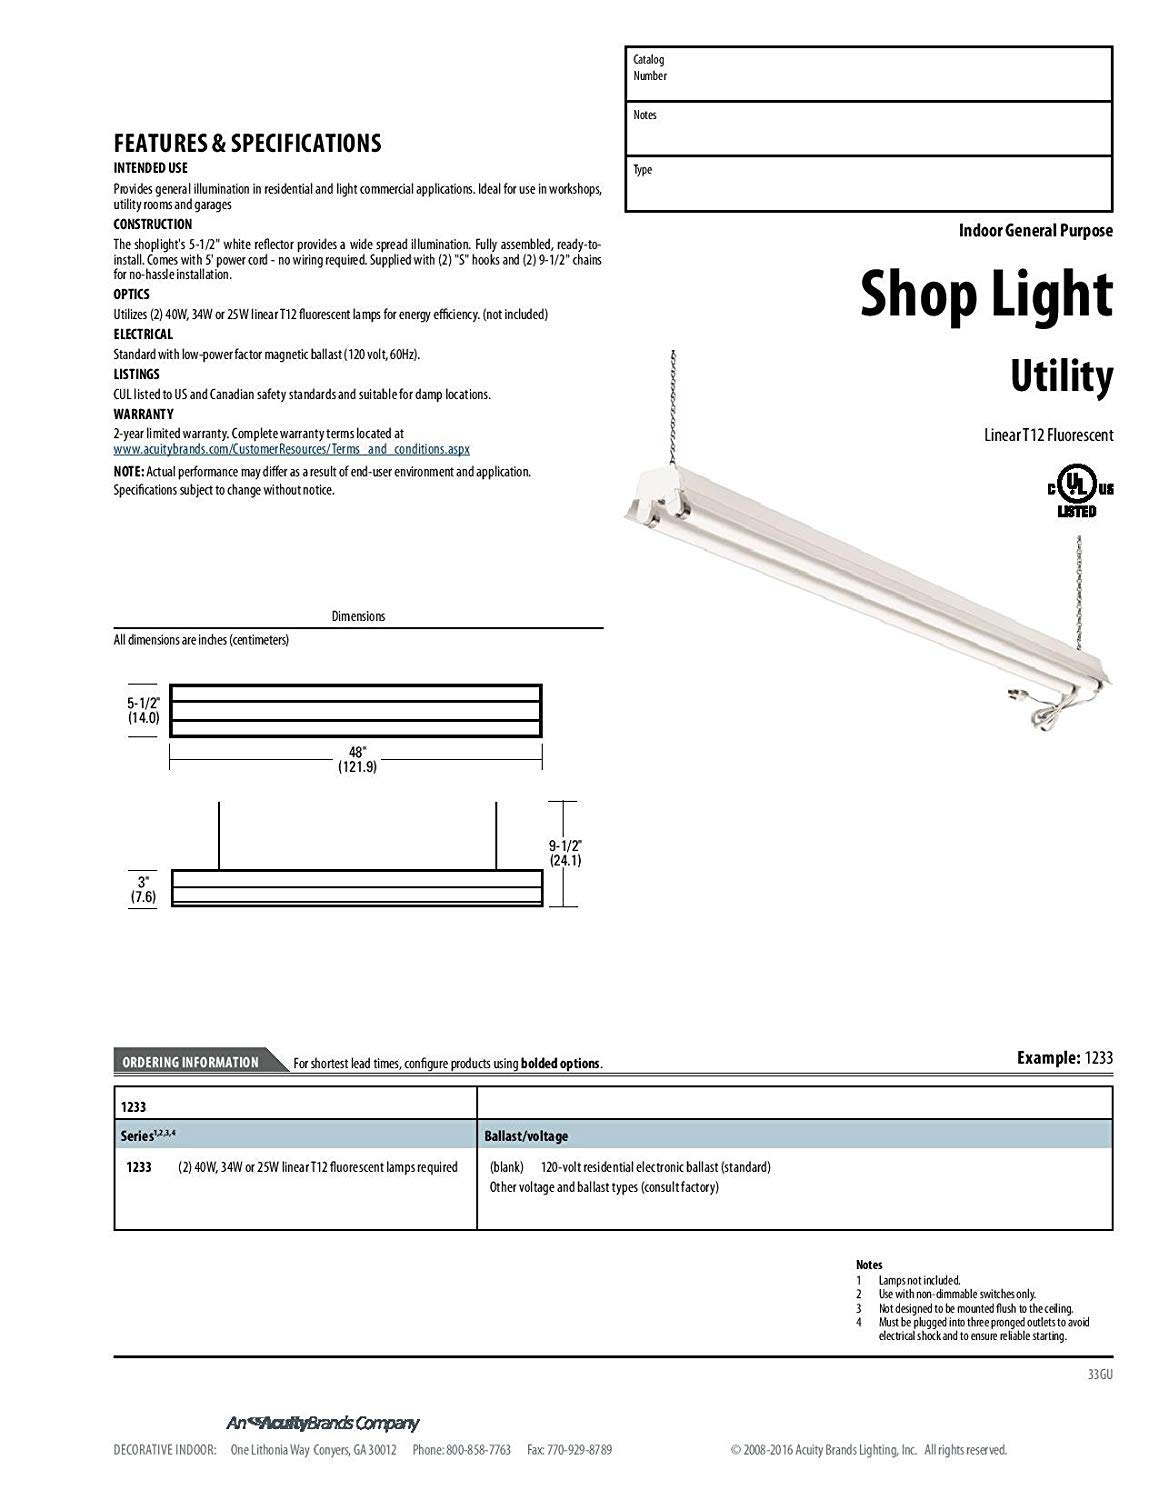 Hubbell Lighting Ballast Diagram Trusted Wiring Columbia Diagrams Lithonia T8 Simple Cree